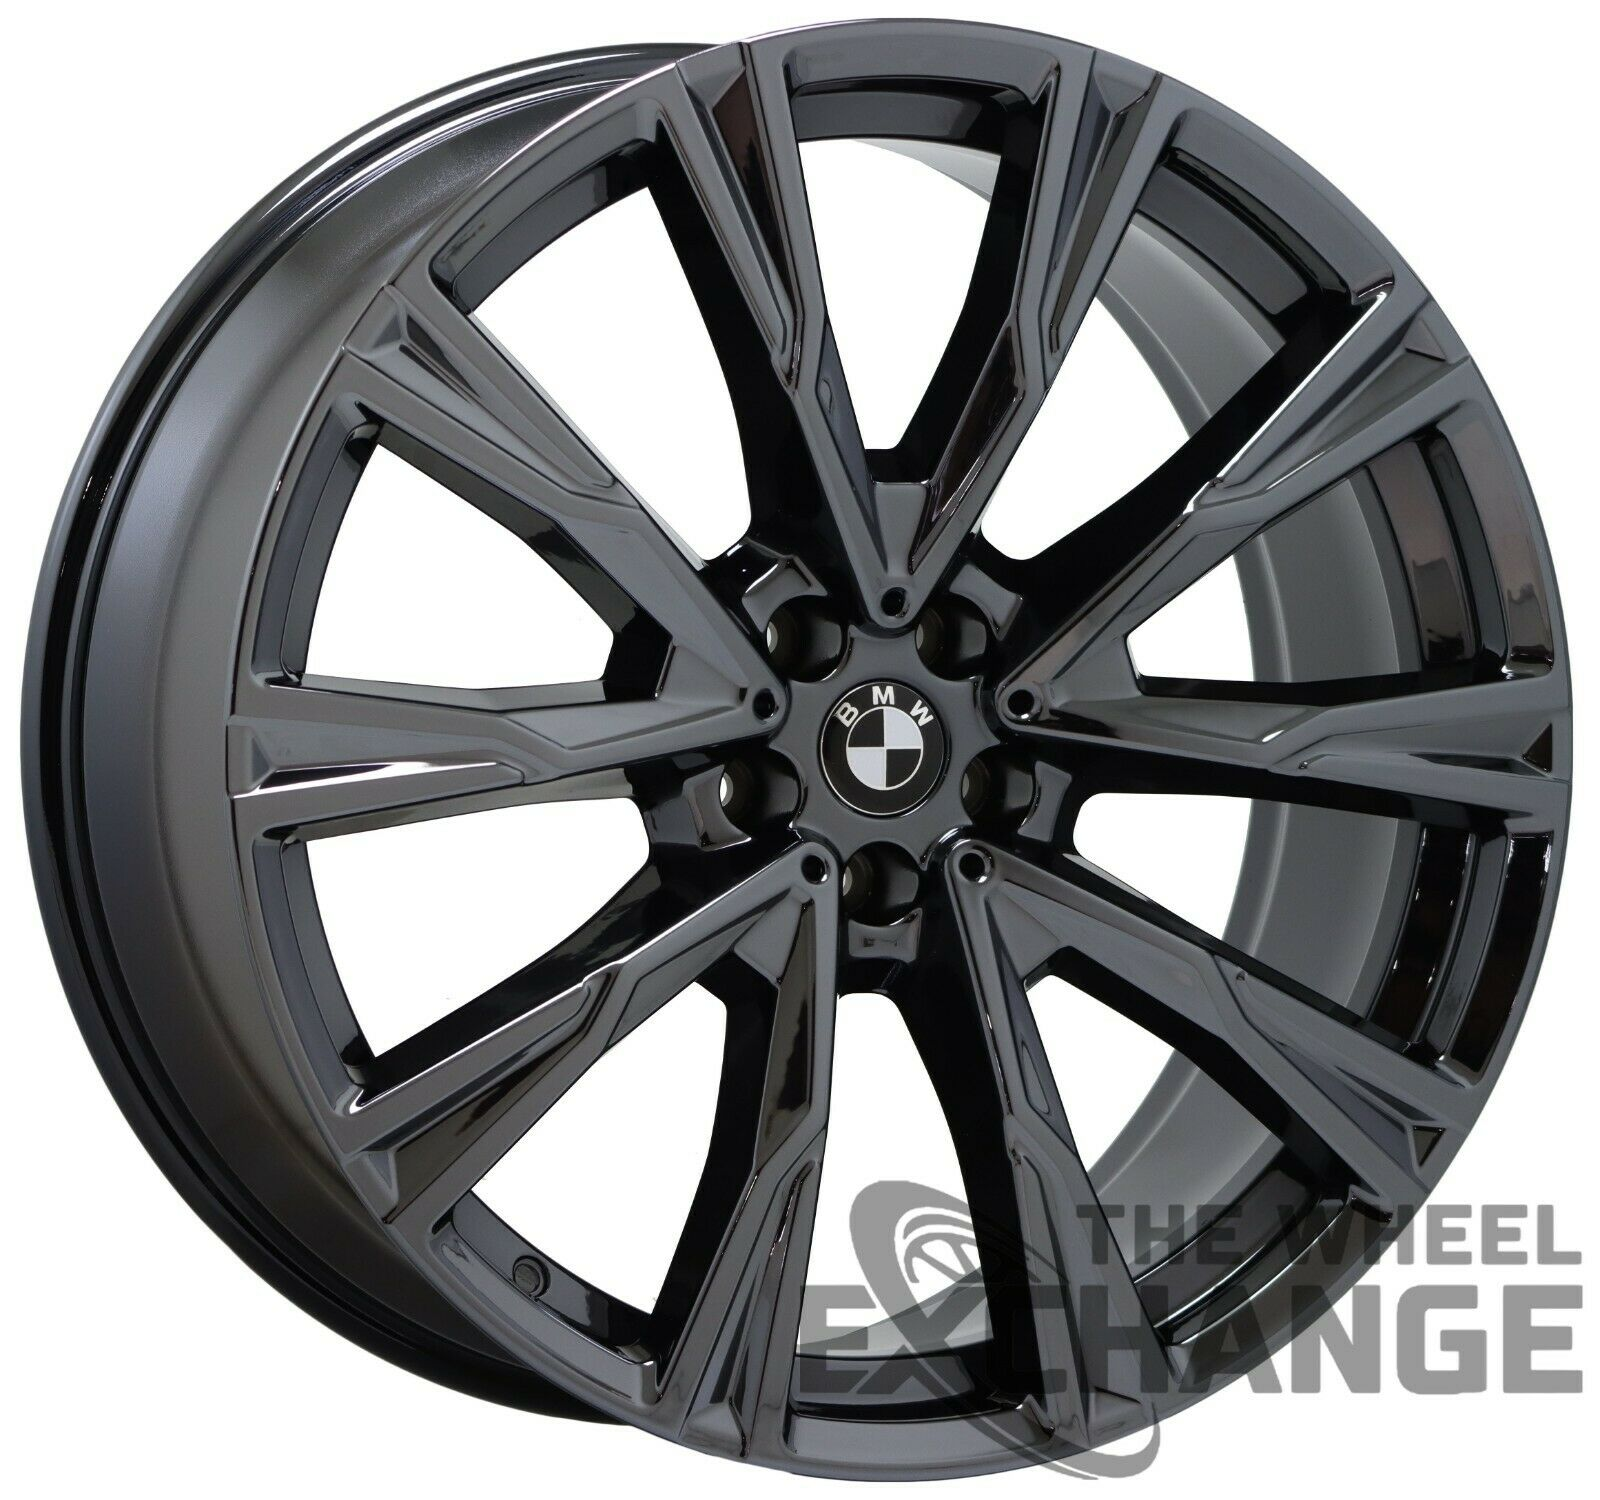 22x9 5 22x10 5 Bmw X7 Black Chrome Wheels Rims Factory Oem 22 Set 4 2 The Wheel Exchange